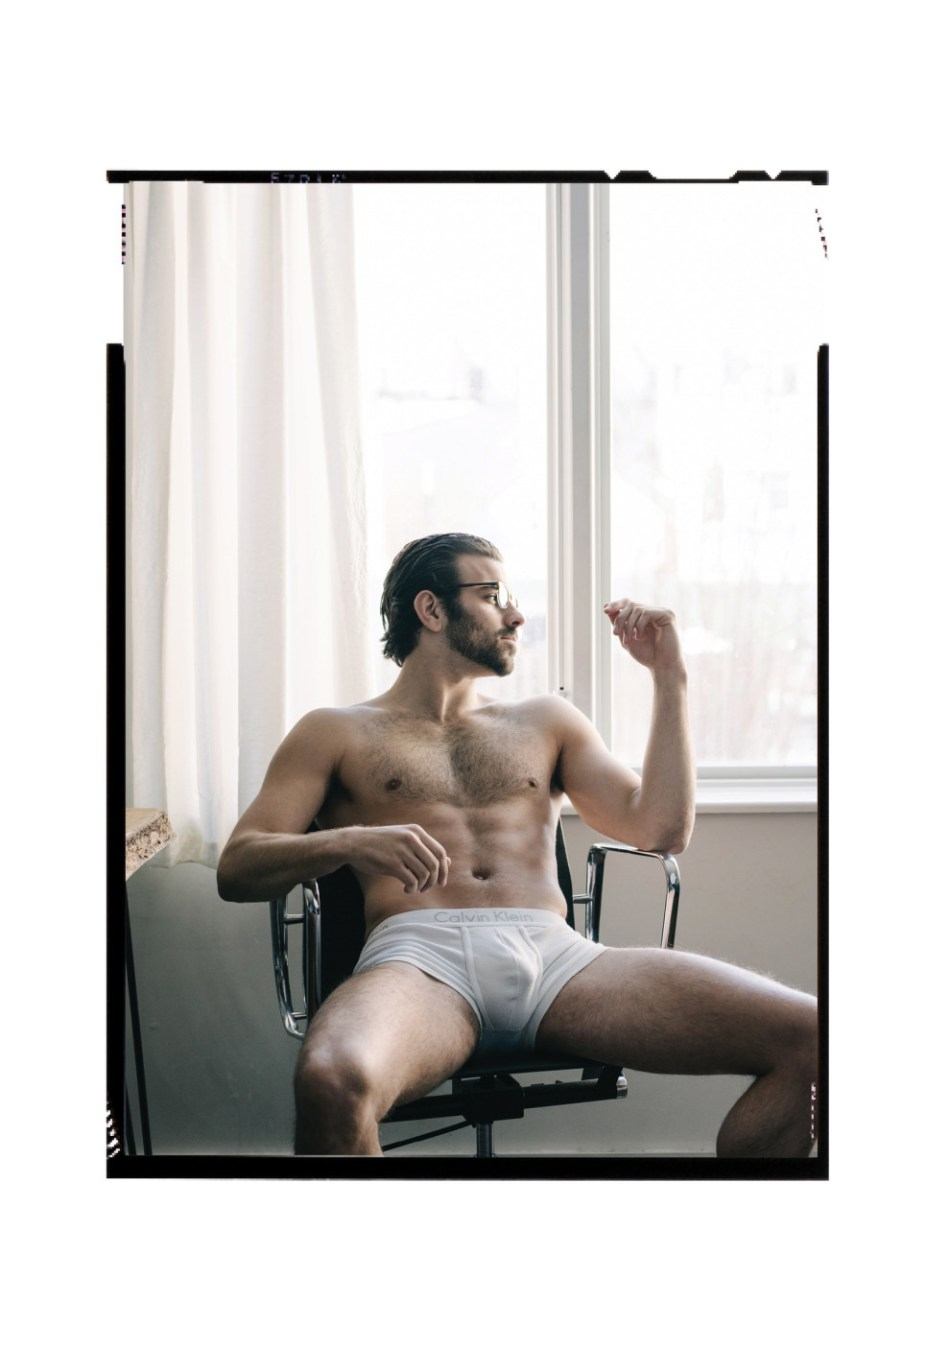 Nyle DiMarco by Taylor Miller for Buzzfeed1